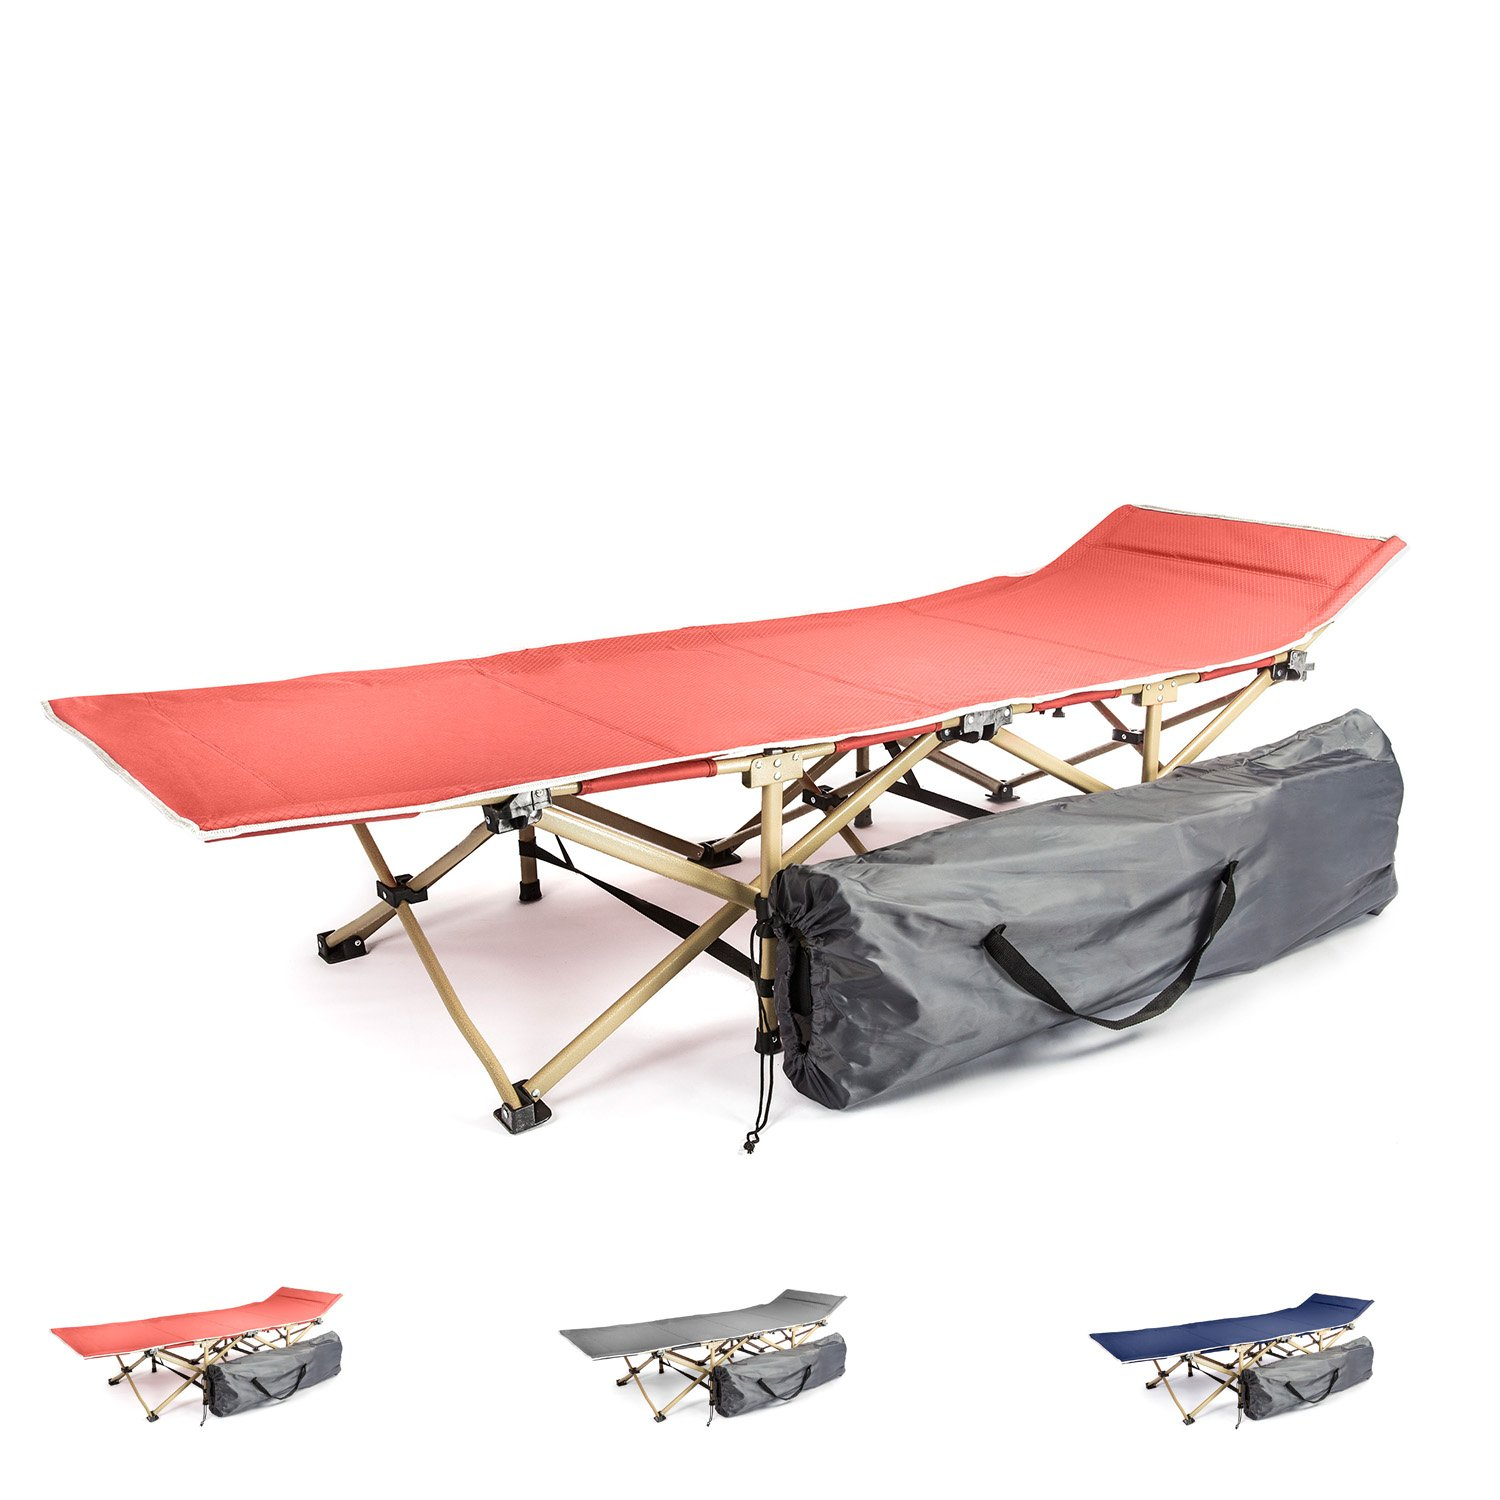 Camping cot portable folding bed for adults and kids   While camping or backpacking take our foldable cots for sleeping or just rest   Our fold up travel camp beds are heavy duty and lightweight